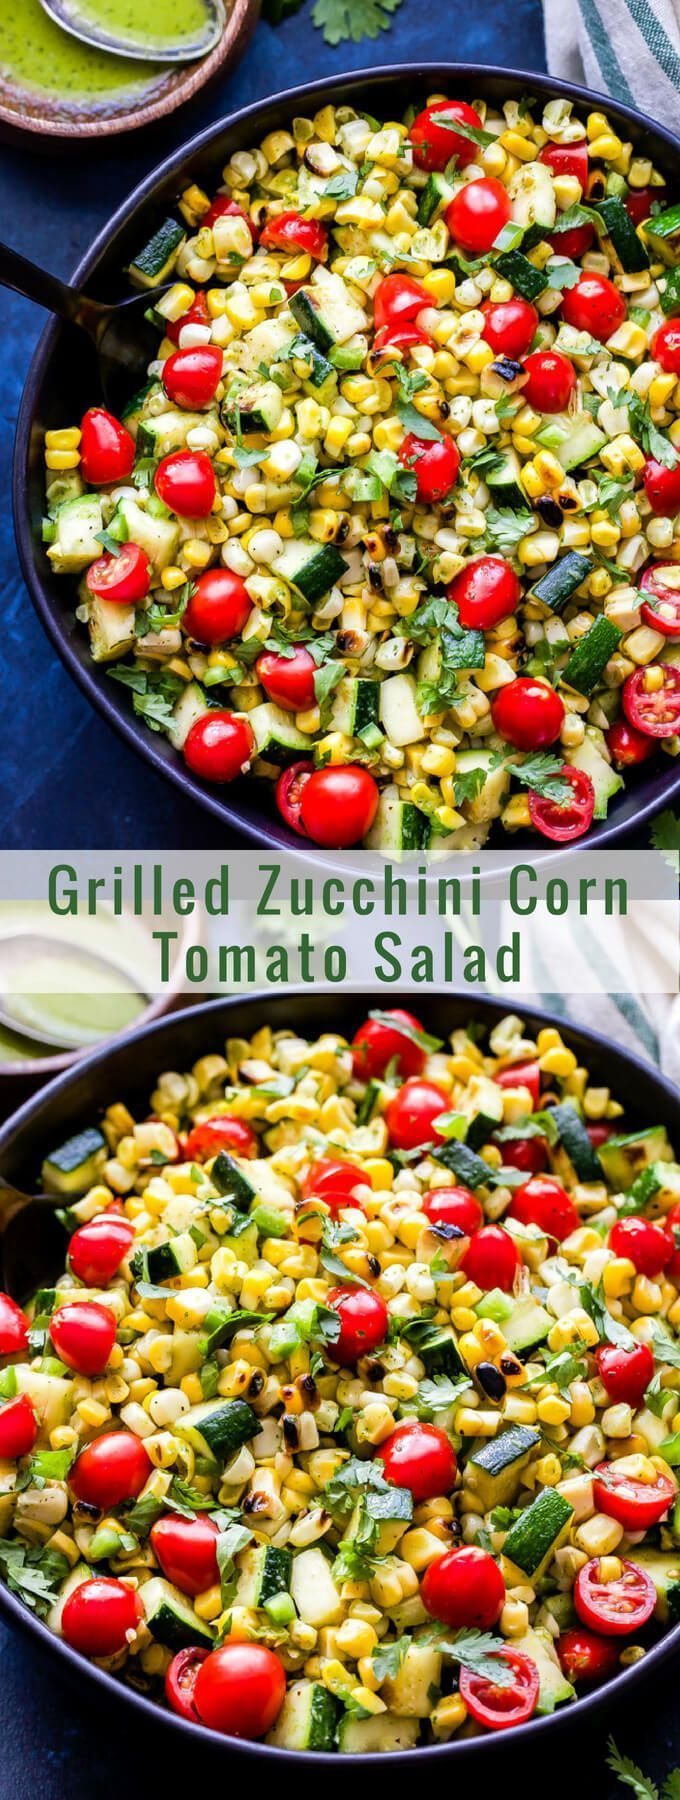 Zucchini Corn Tomato Salad is a simple salad using all of summer's finest produce. Grilling the vegetables adds a wonderful smoky flavor and the cilantro lime vinaigrette brings the whole salad together!